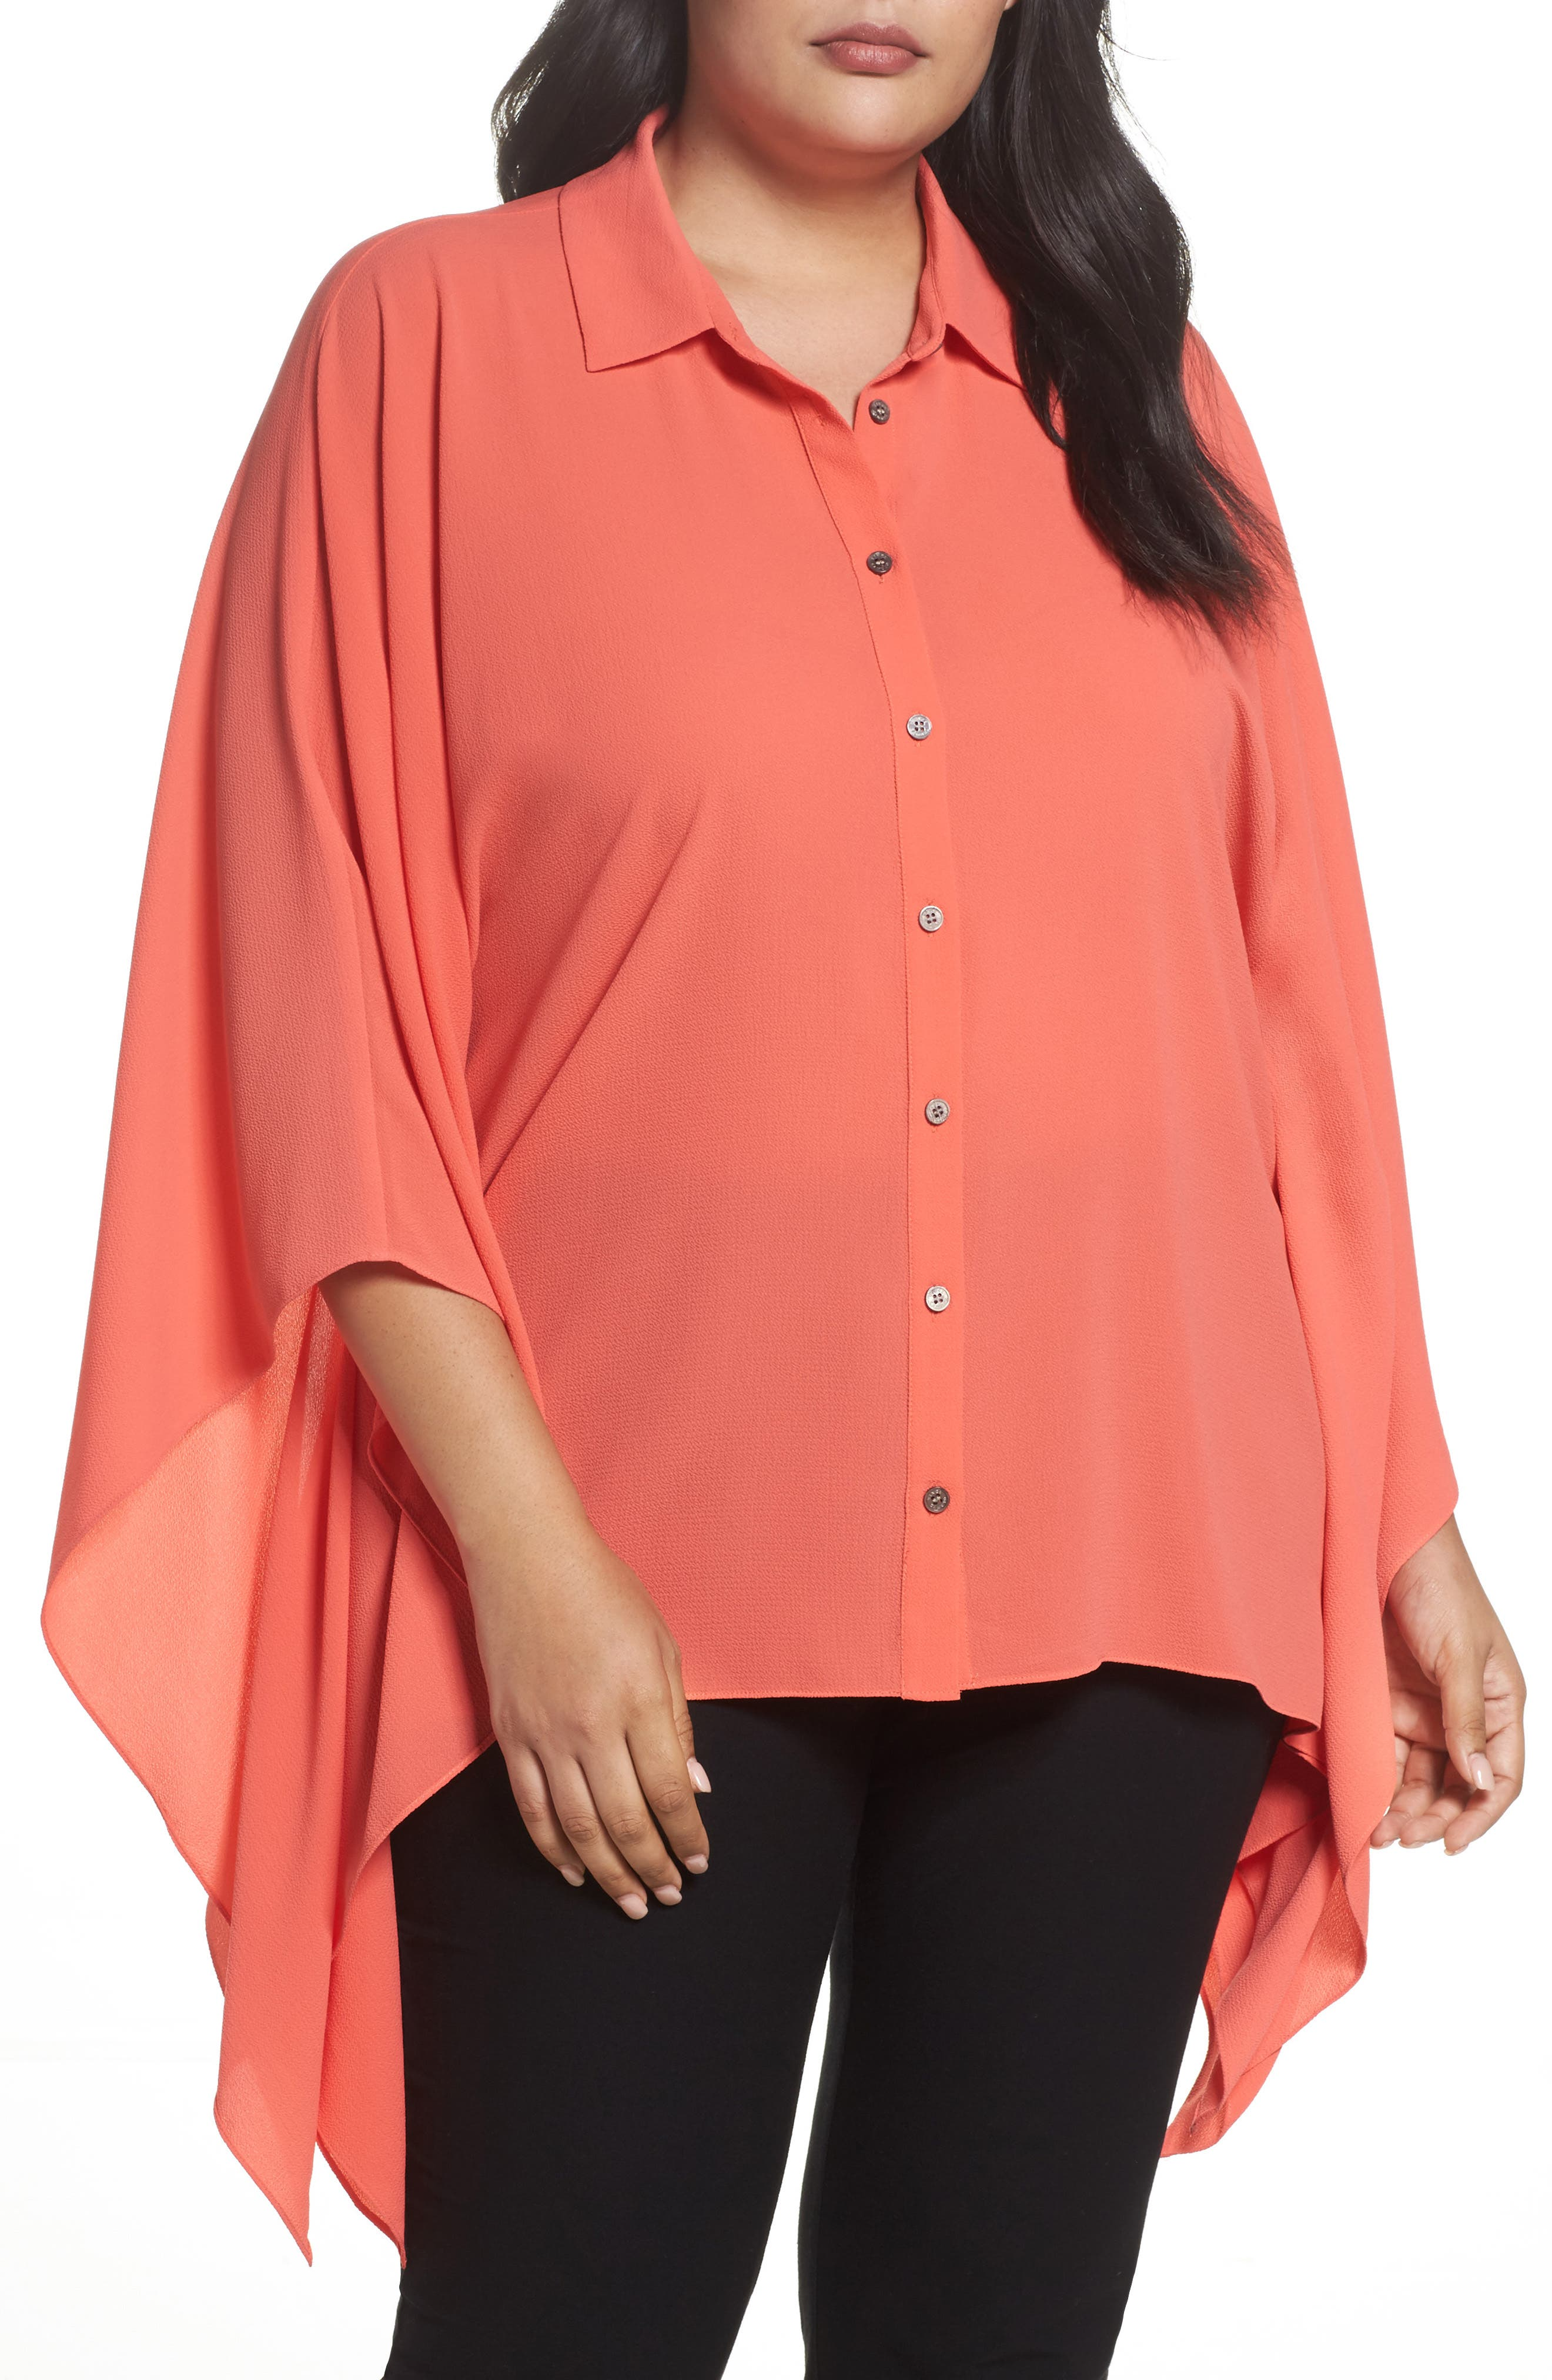 Main Image - Vince Camuto Button Down Collared Poncho Top (Plus Size)